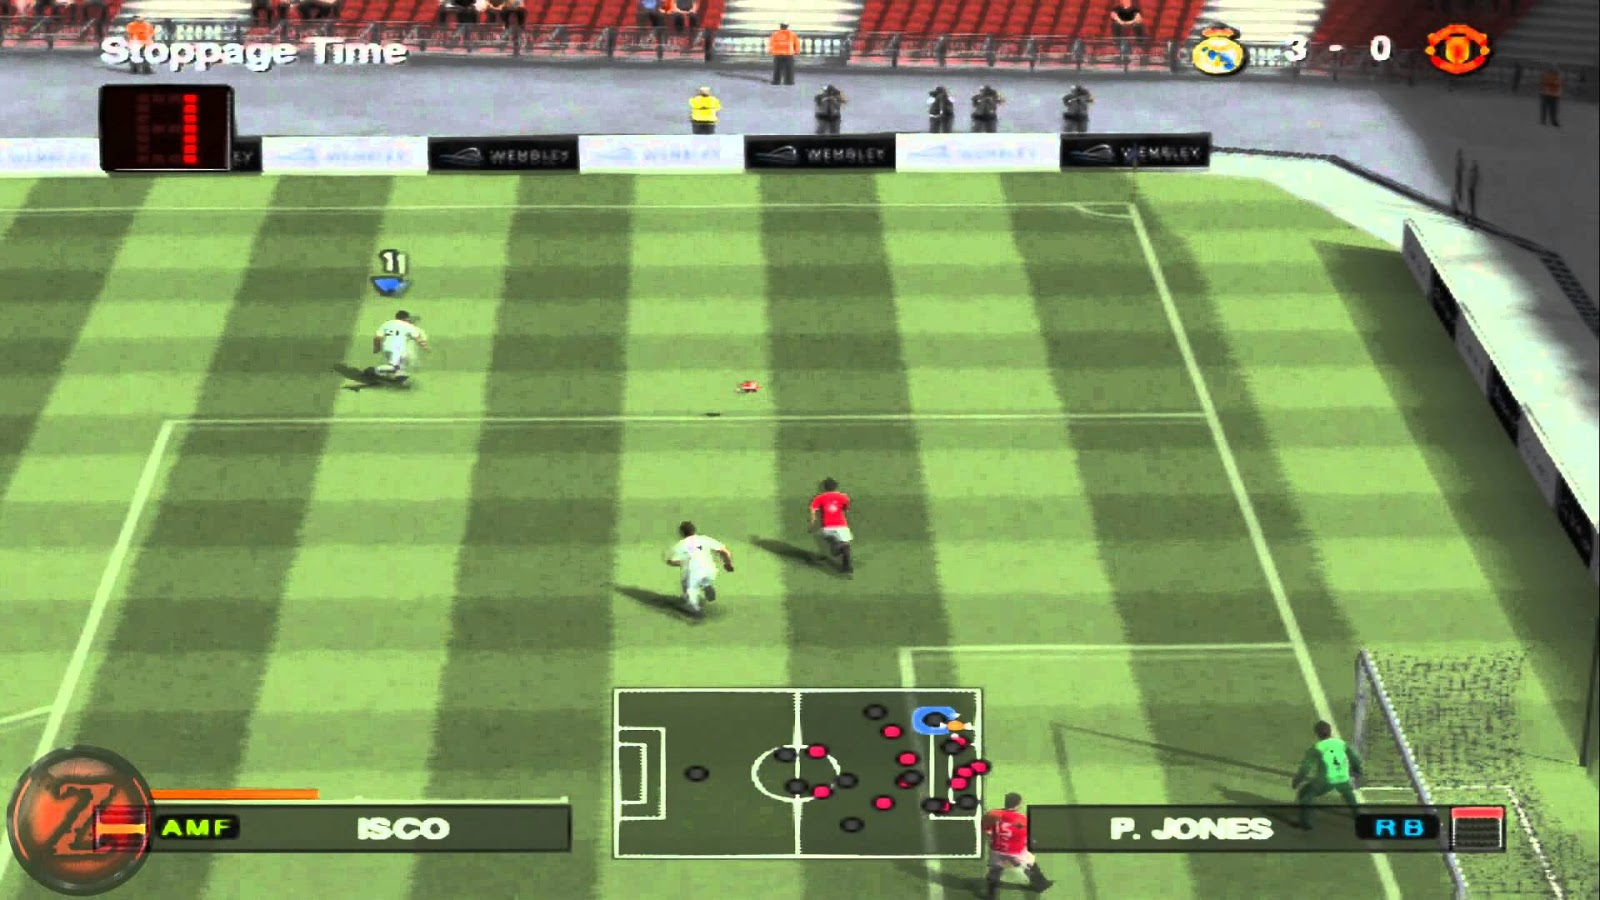 🏆 Download game pes 2013 ps2 iso highly compressed | Pes 2013 psp